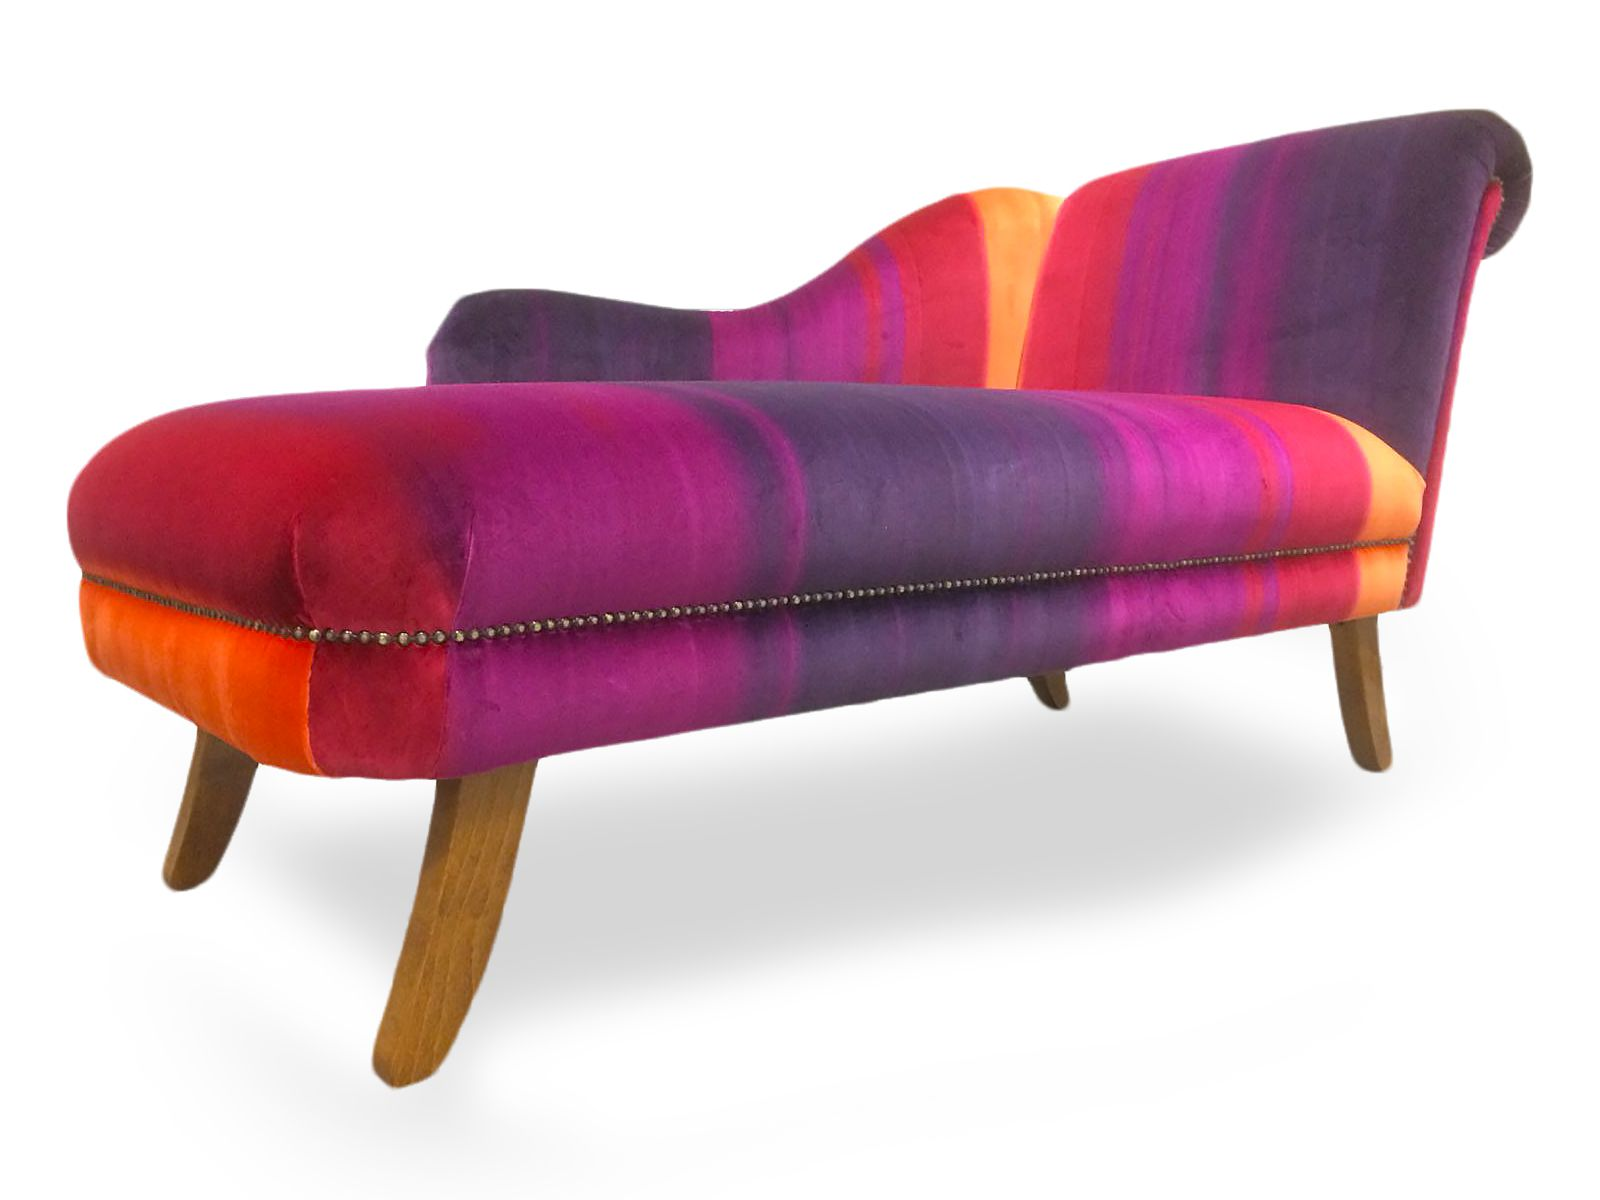 The Chaise Longue Co In 2020 Chaise Bespoke Furniture Furniture Maker